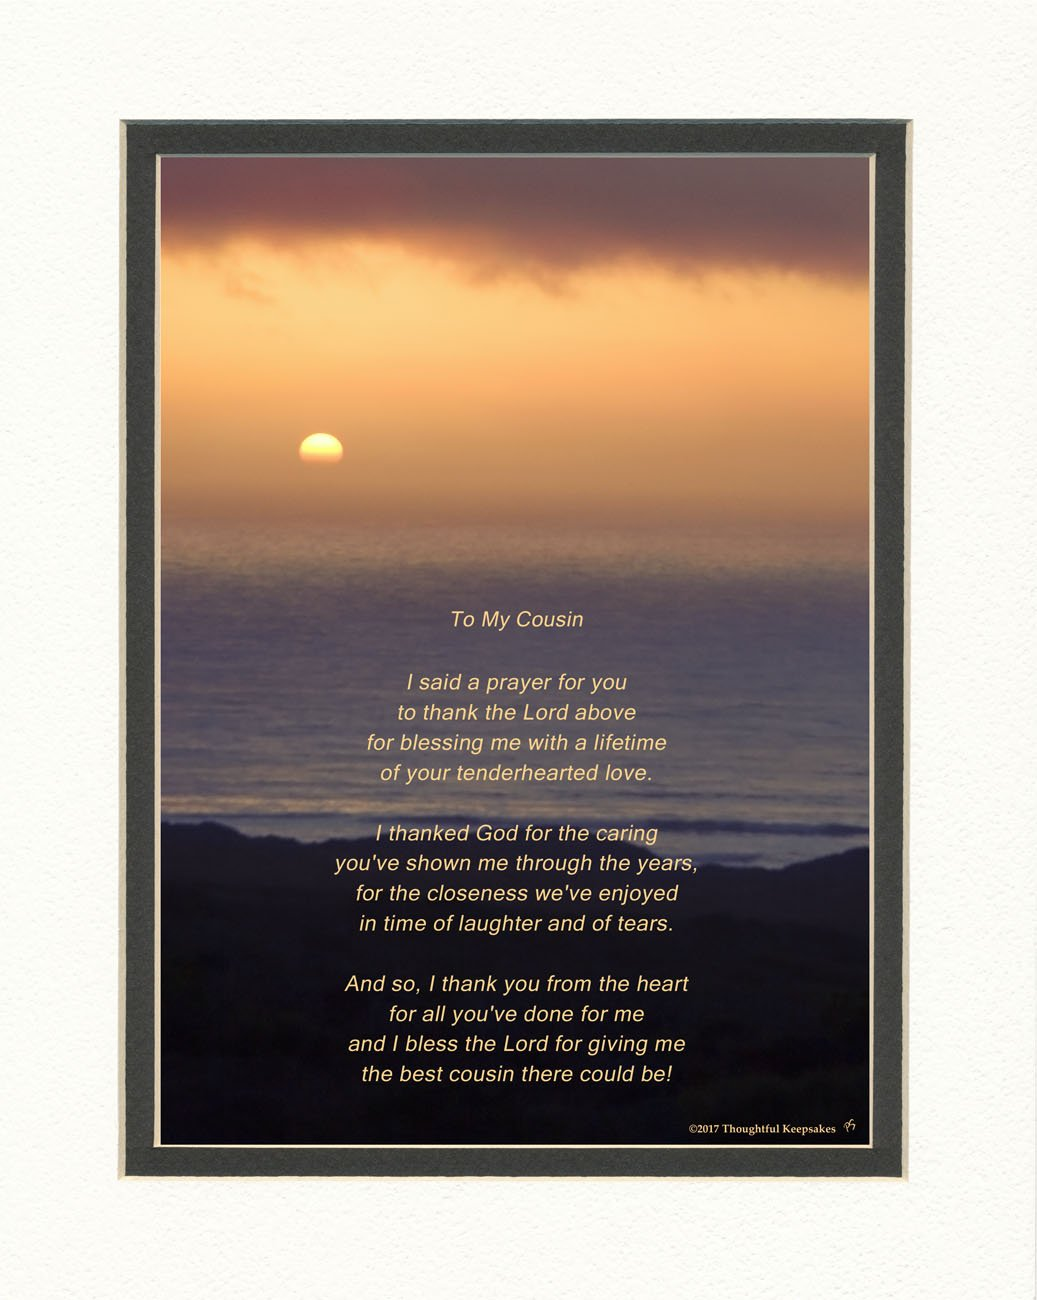 Cousin Gift with Thank You Prayer for Best Cousin Poem. Ocean Sunset Photo, 8x10 Double Matted. Special Birthday, for Cousin